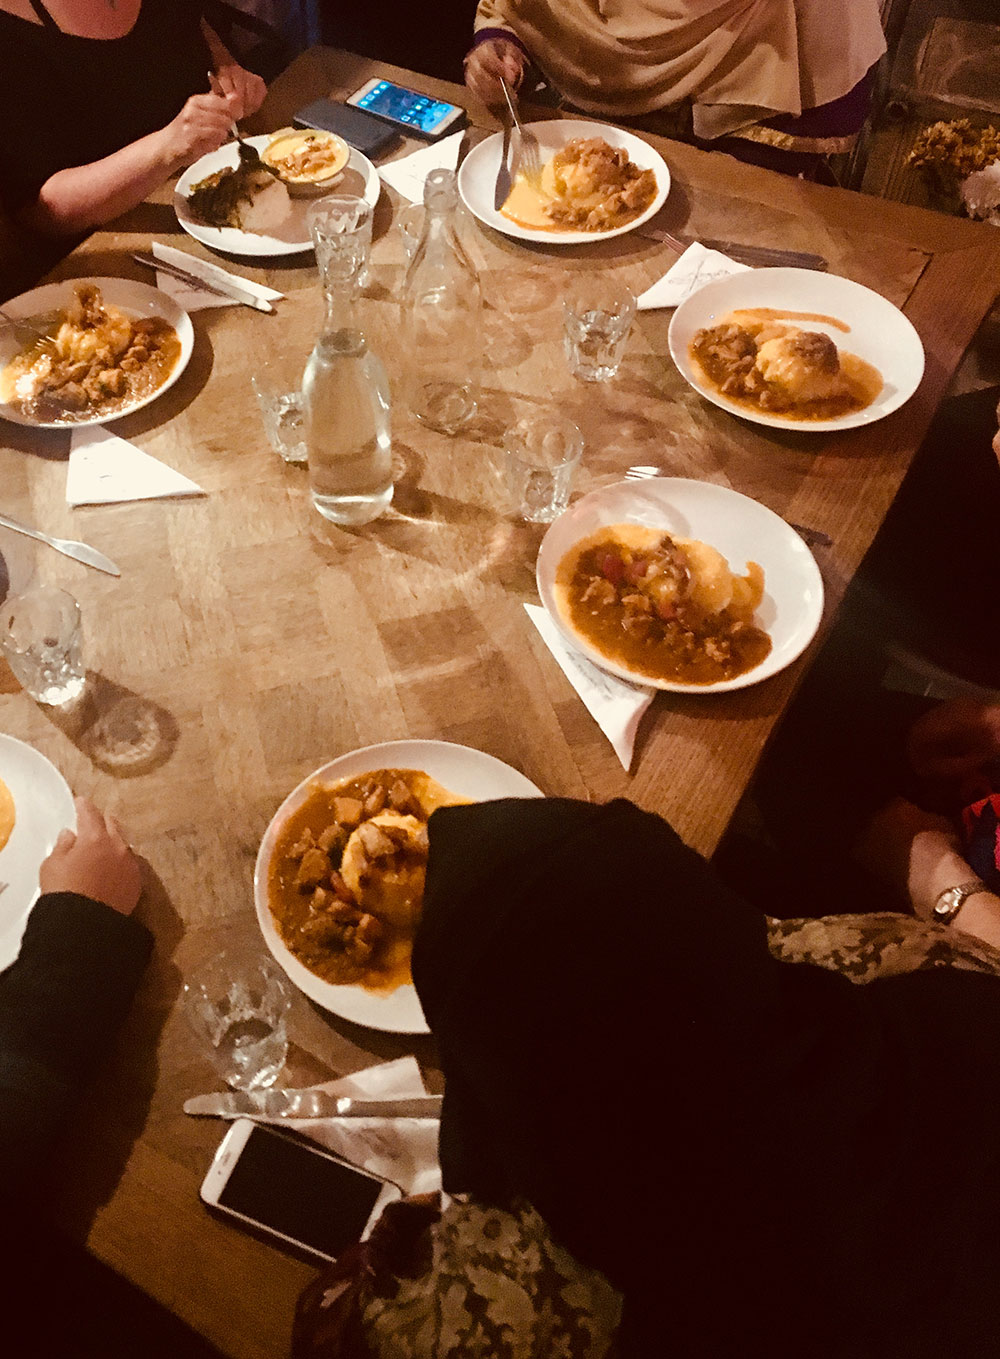 People around a table eating curry